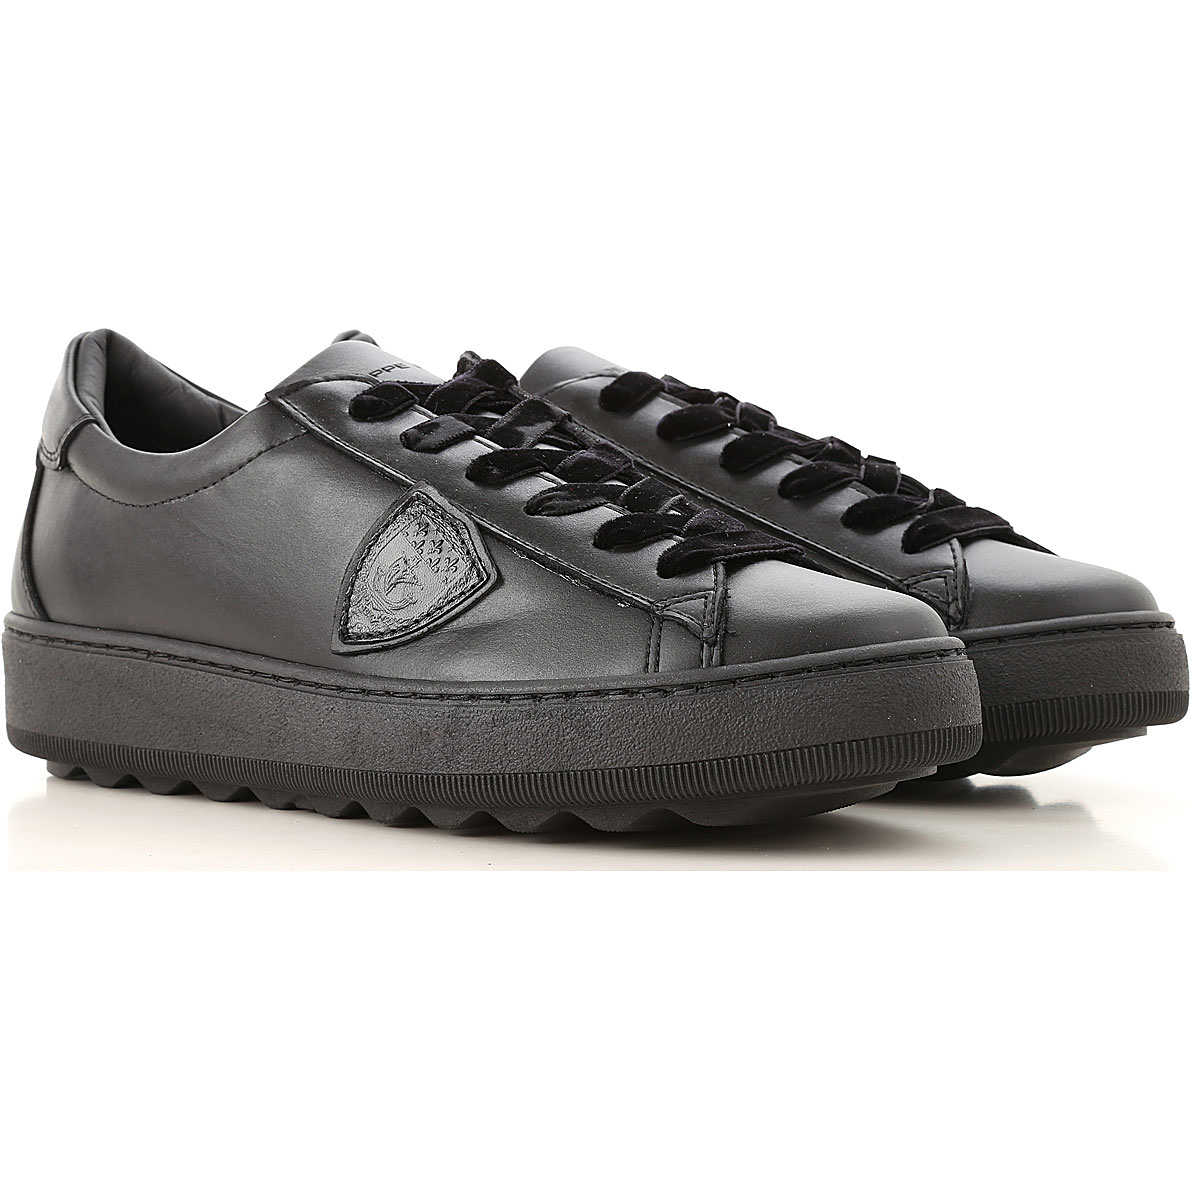 Philippe Model Sneakers for Women On Sale Black - GOOFASH